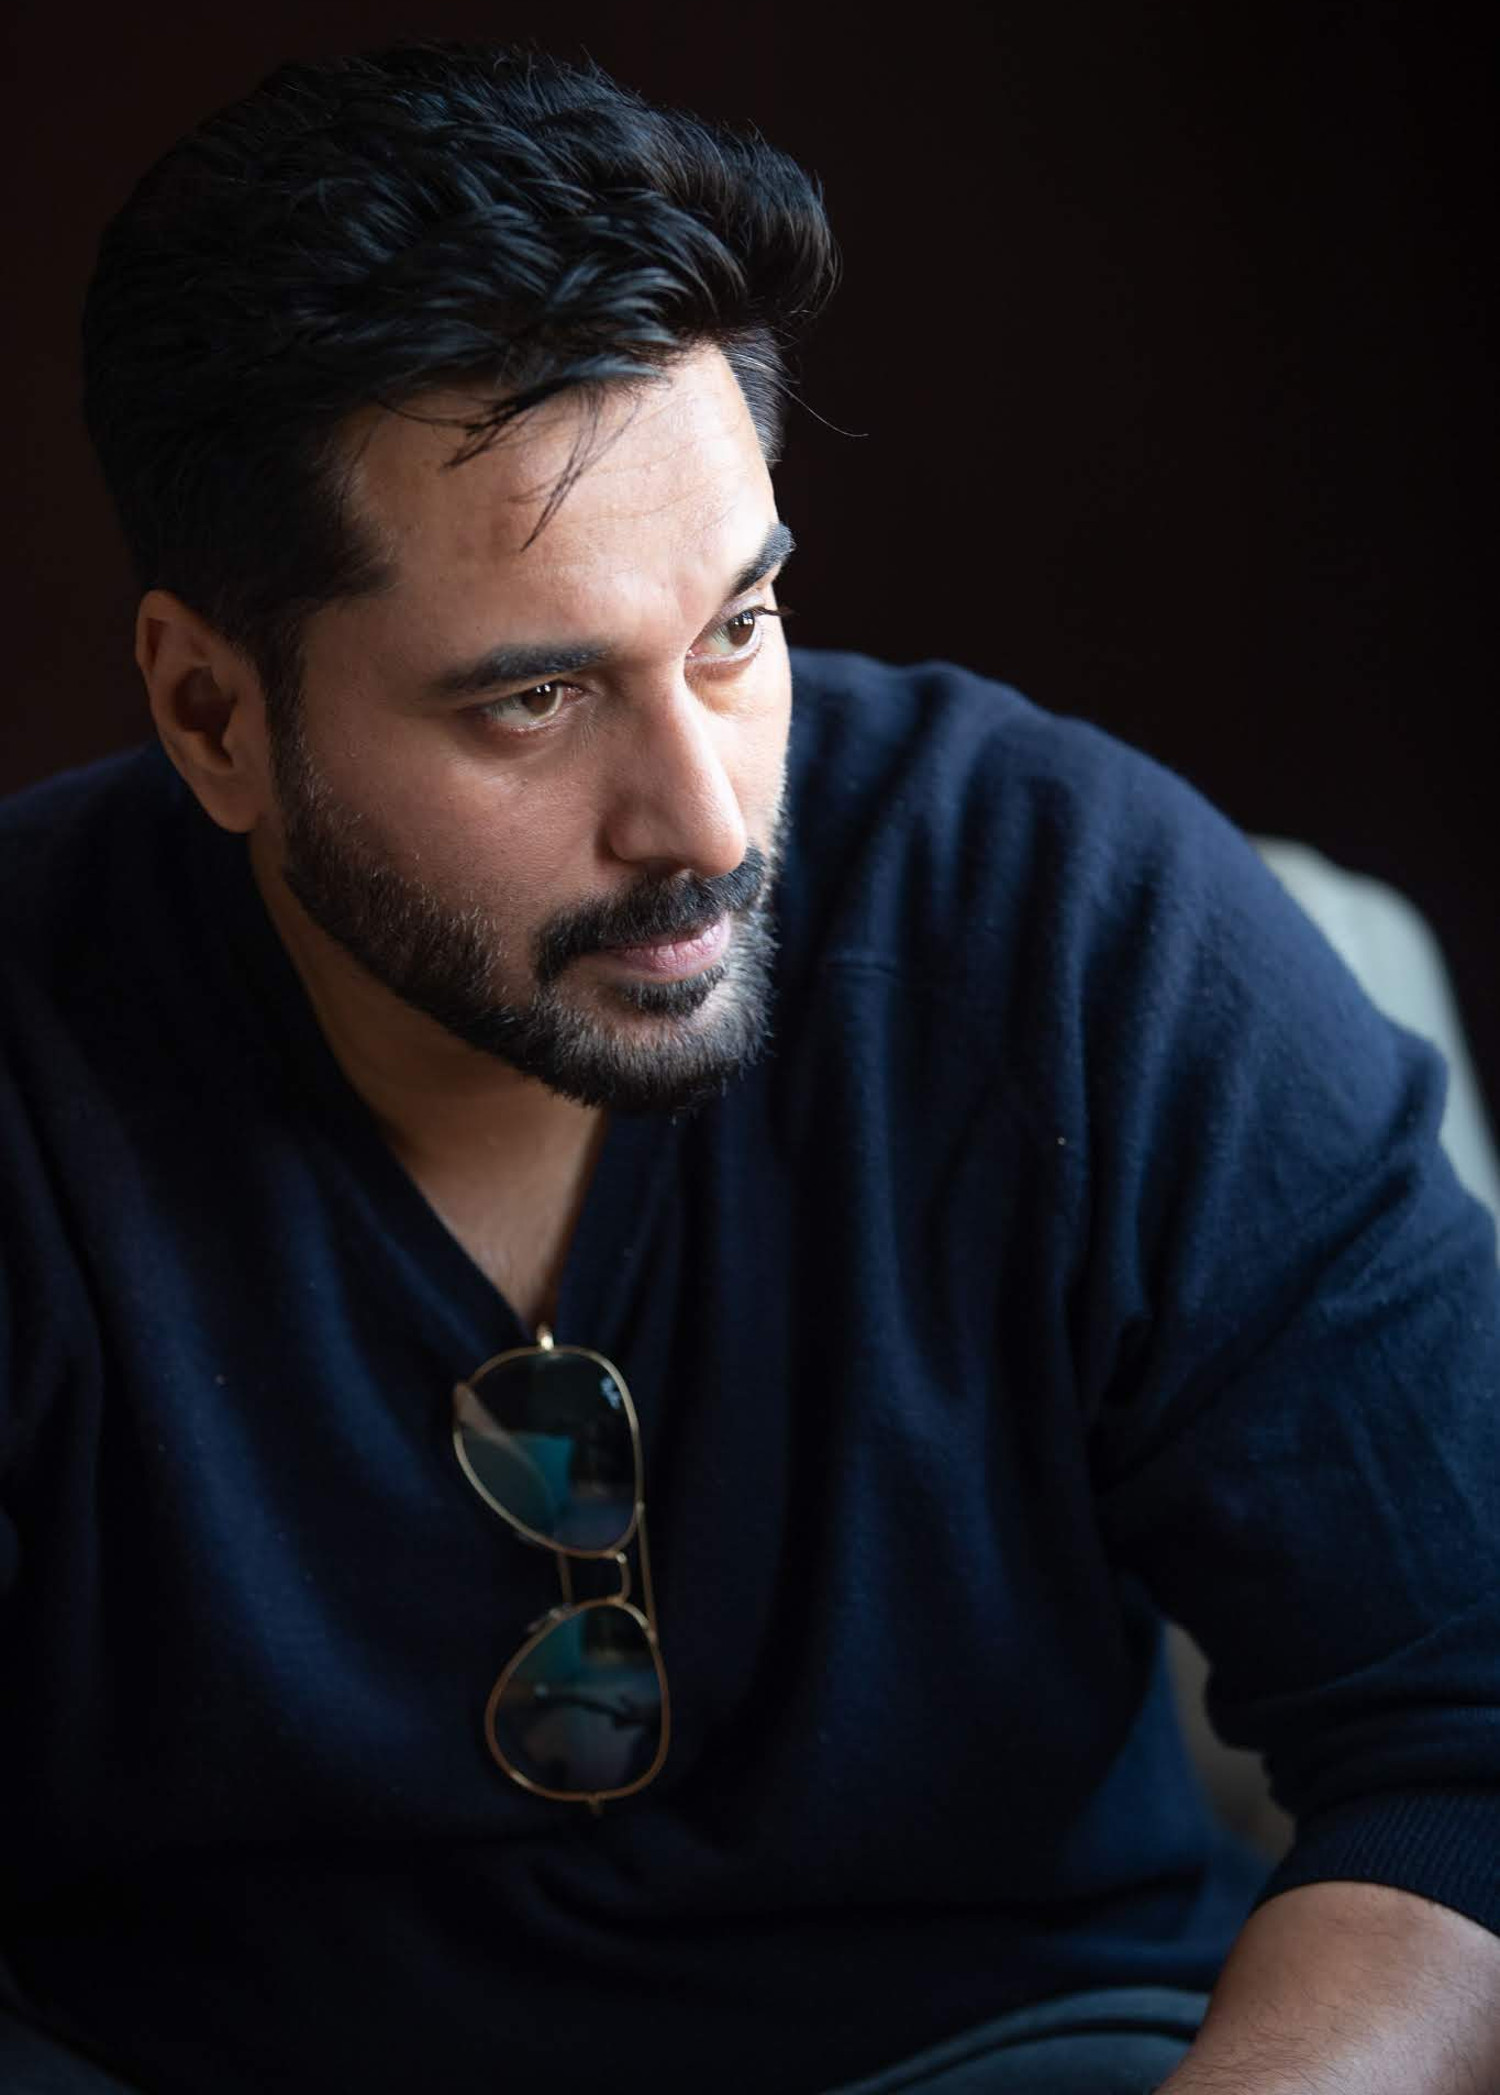 I'm always ready to do an important role - Actor Rahman